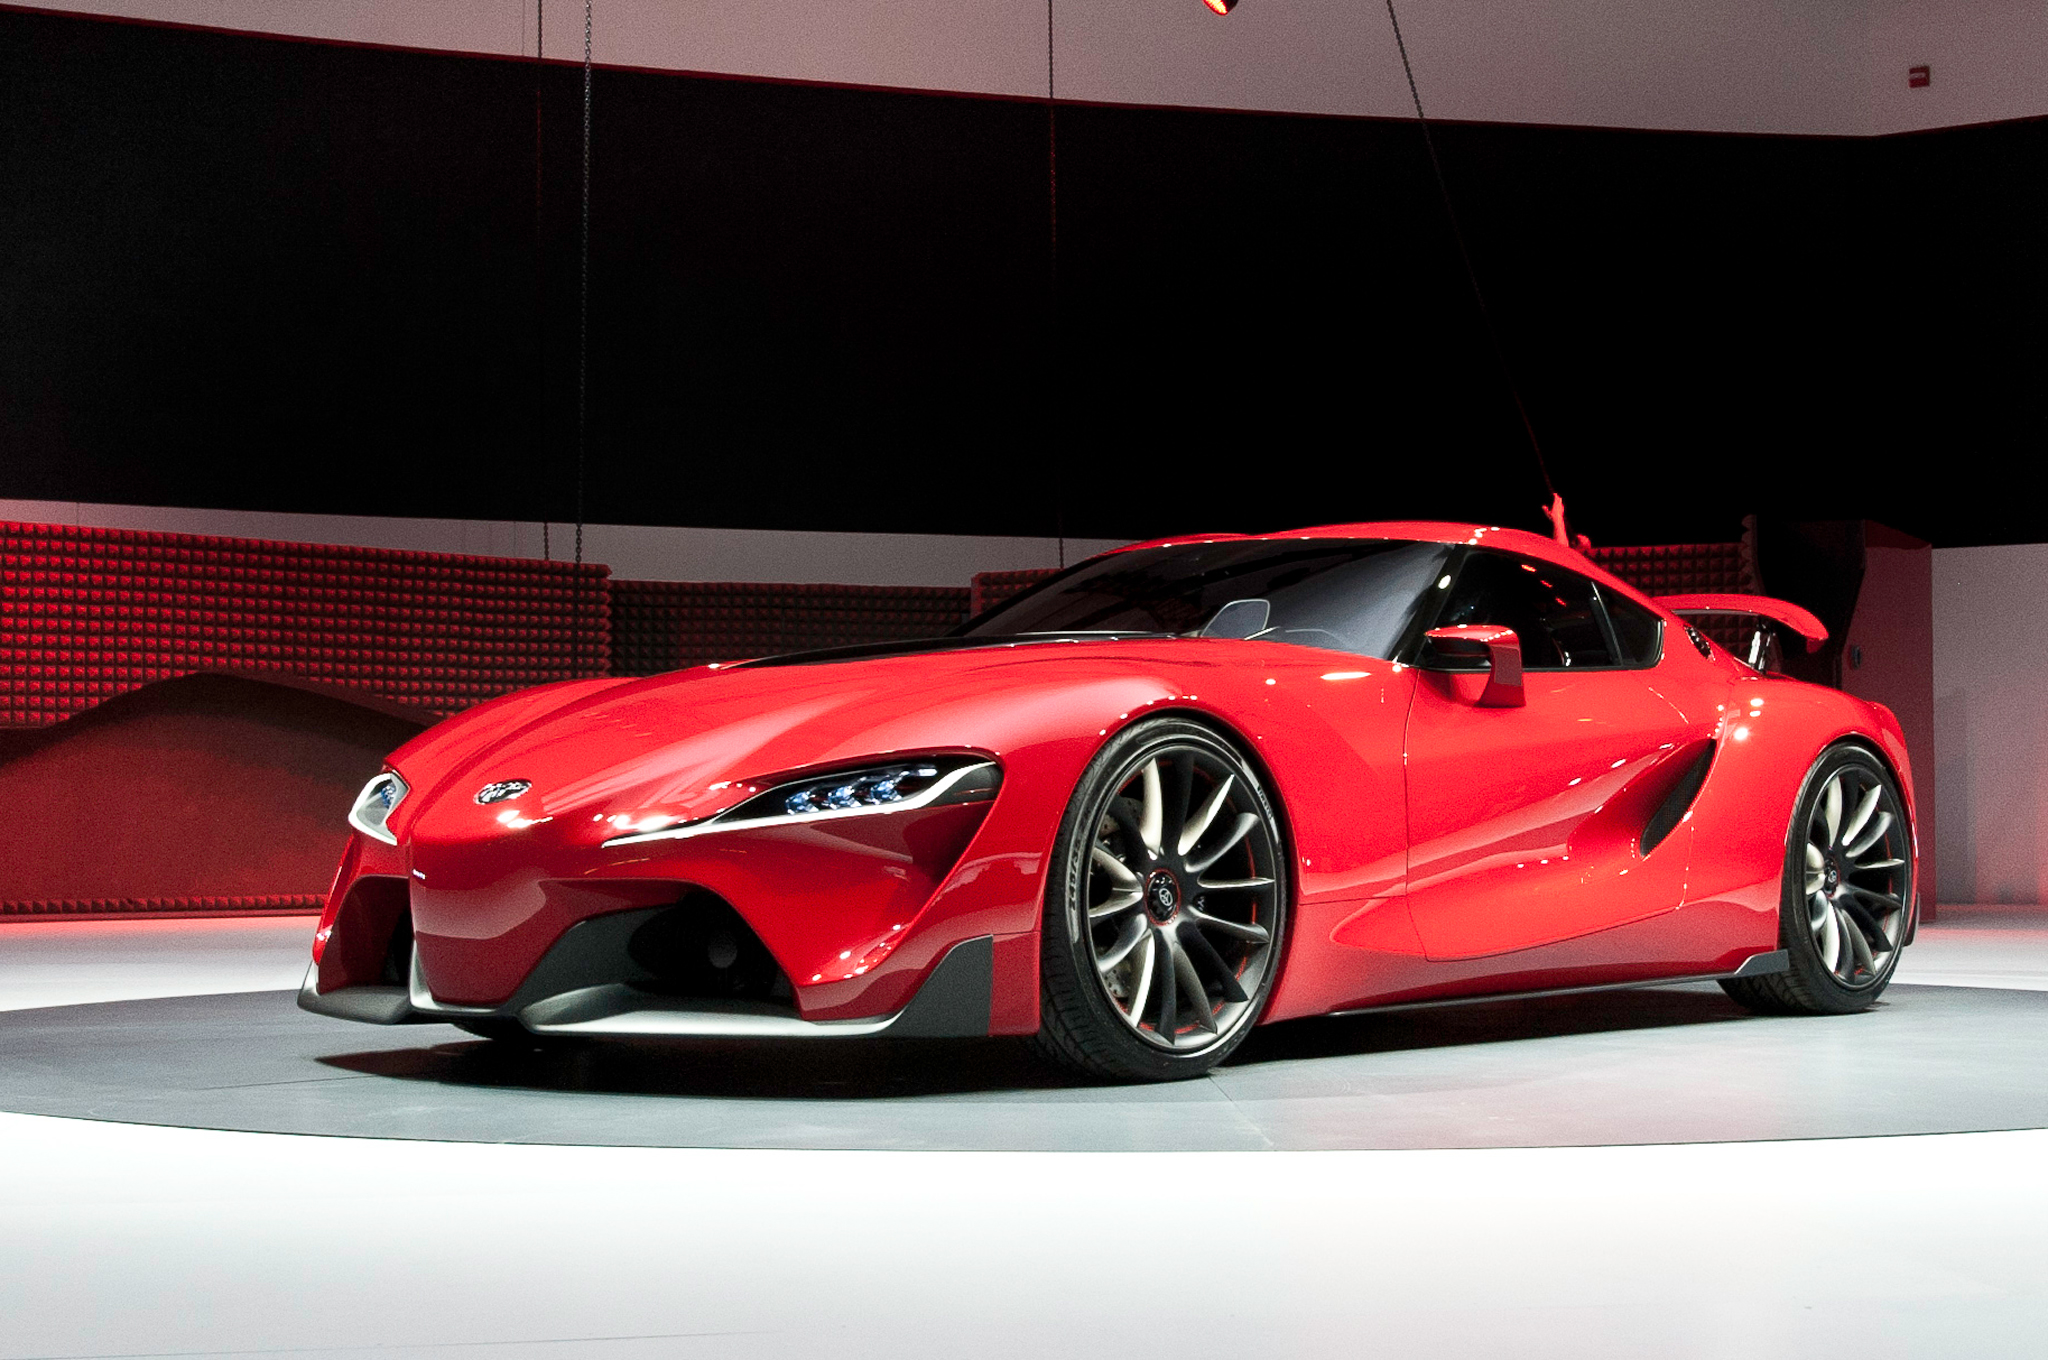 2048x1360 > Toyota FT-1 Concept Wallpapers